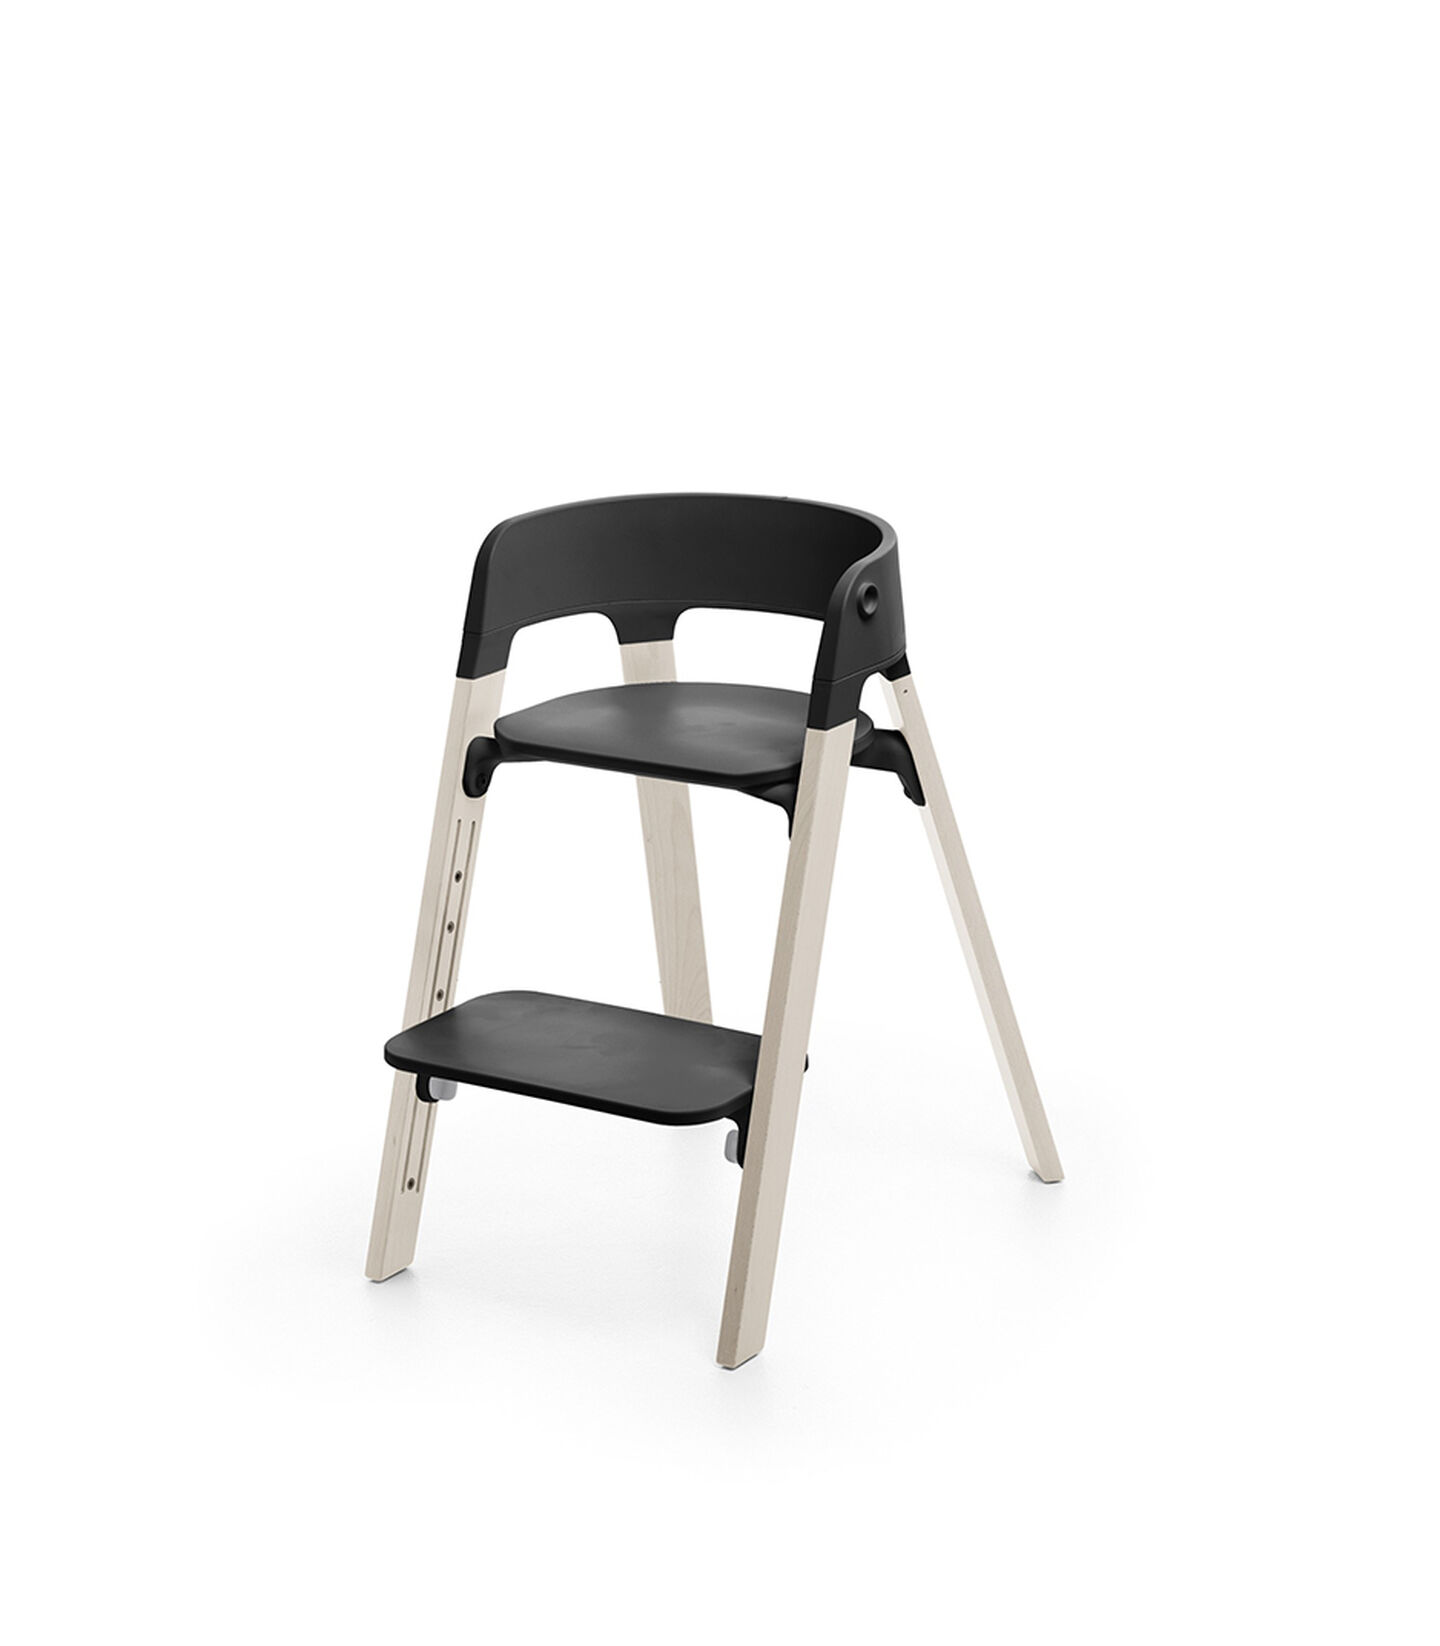 Stokke® Steps™ Whitewash with Black seat and footrest in low position.